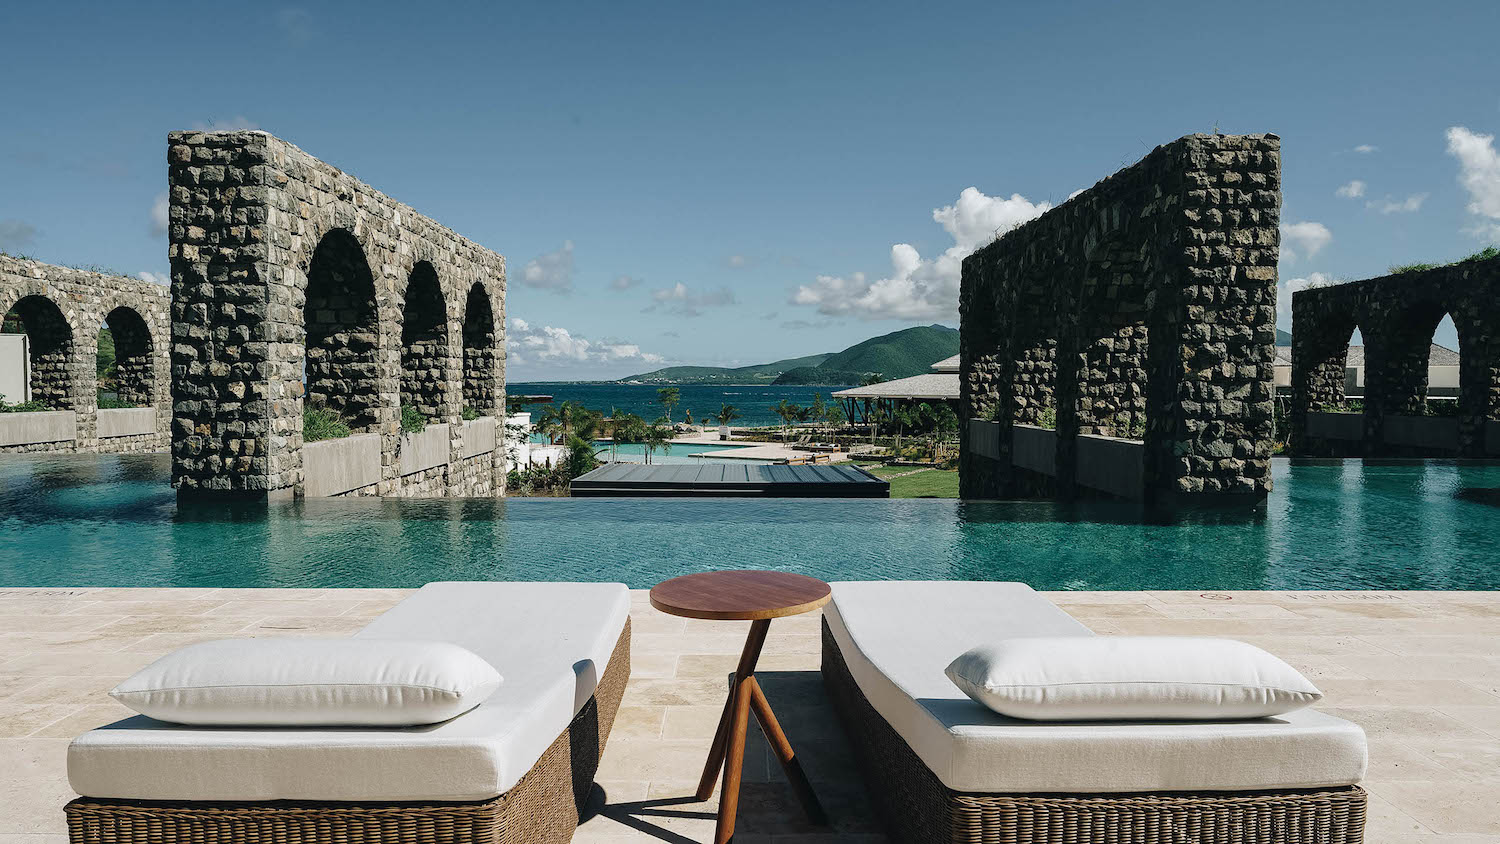 Park-Hyatt-St-Kitts-P100-Rampart-Pool.16x9.jpg